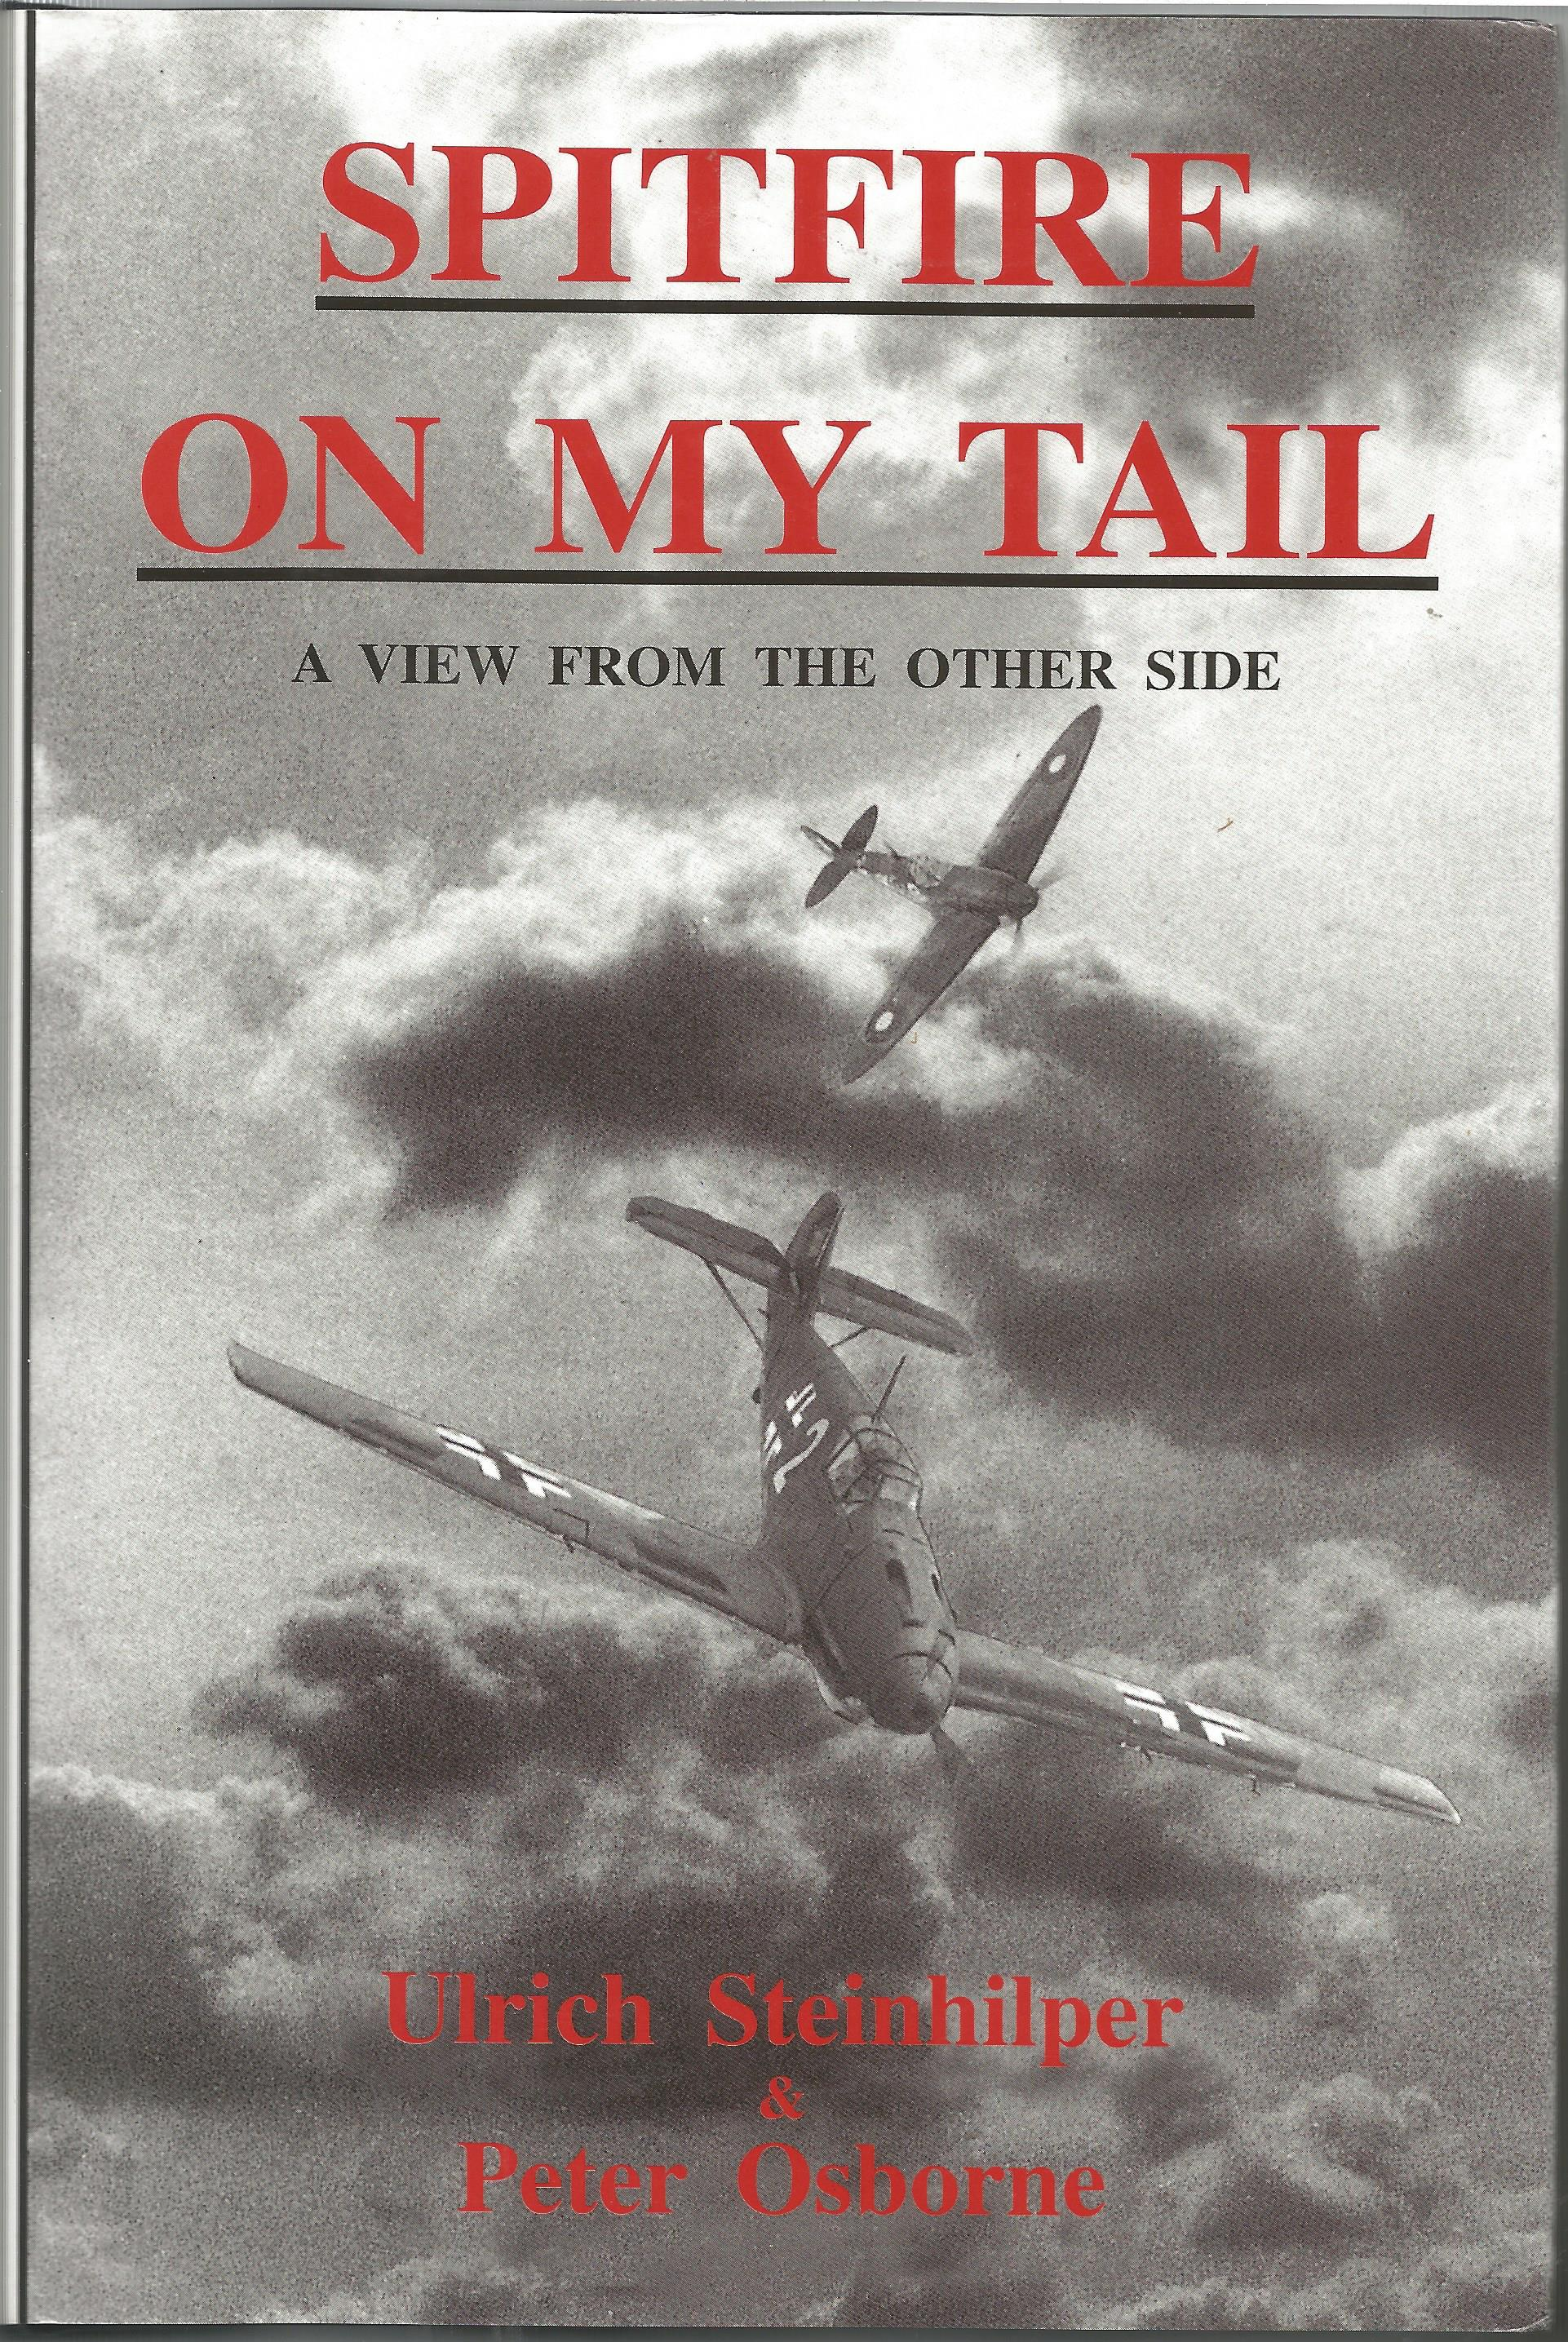 Spitfire on my Tail hardbacked book signed by Luftwaffe and fighter aces Ulrich Steinhilper and Bill